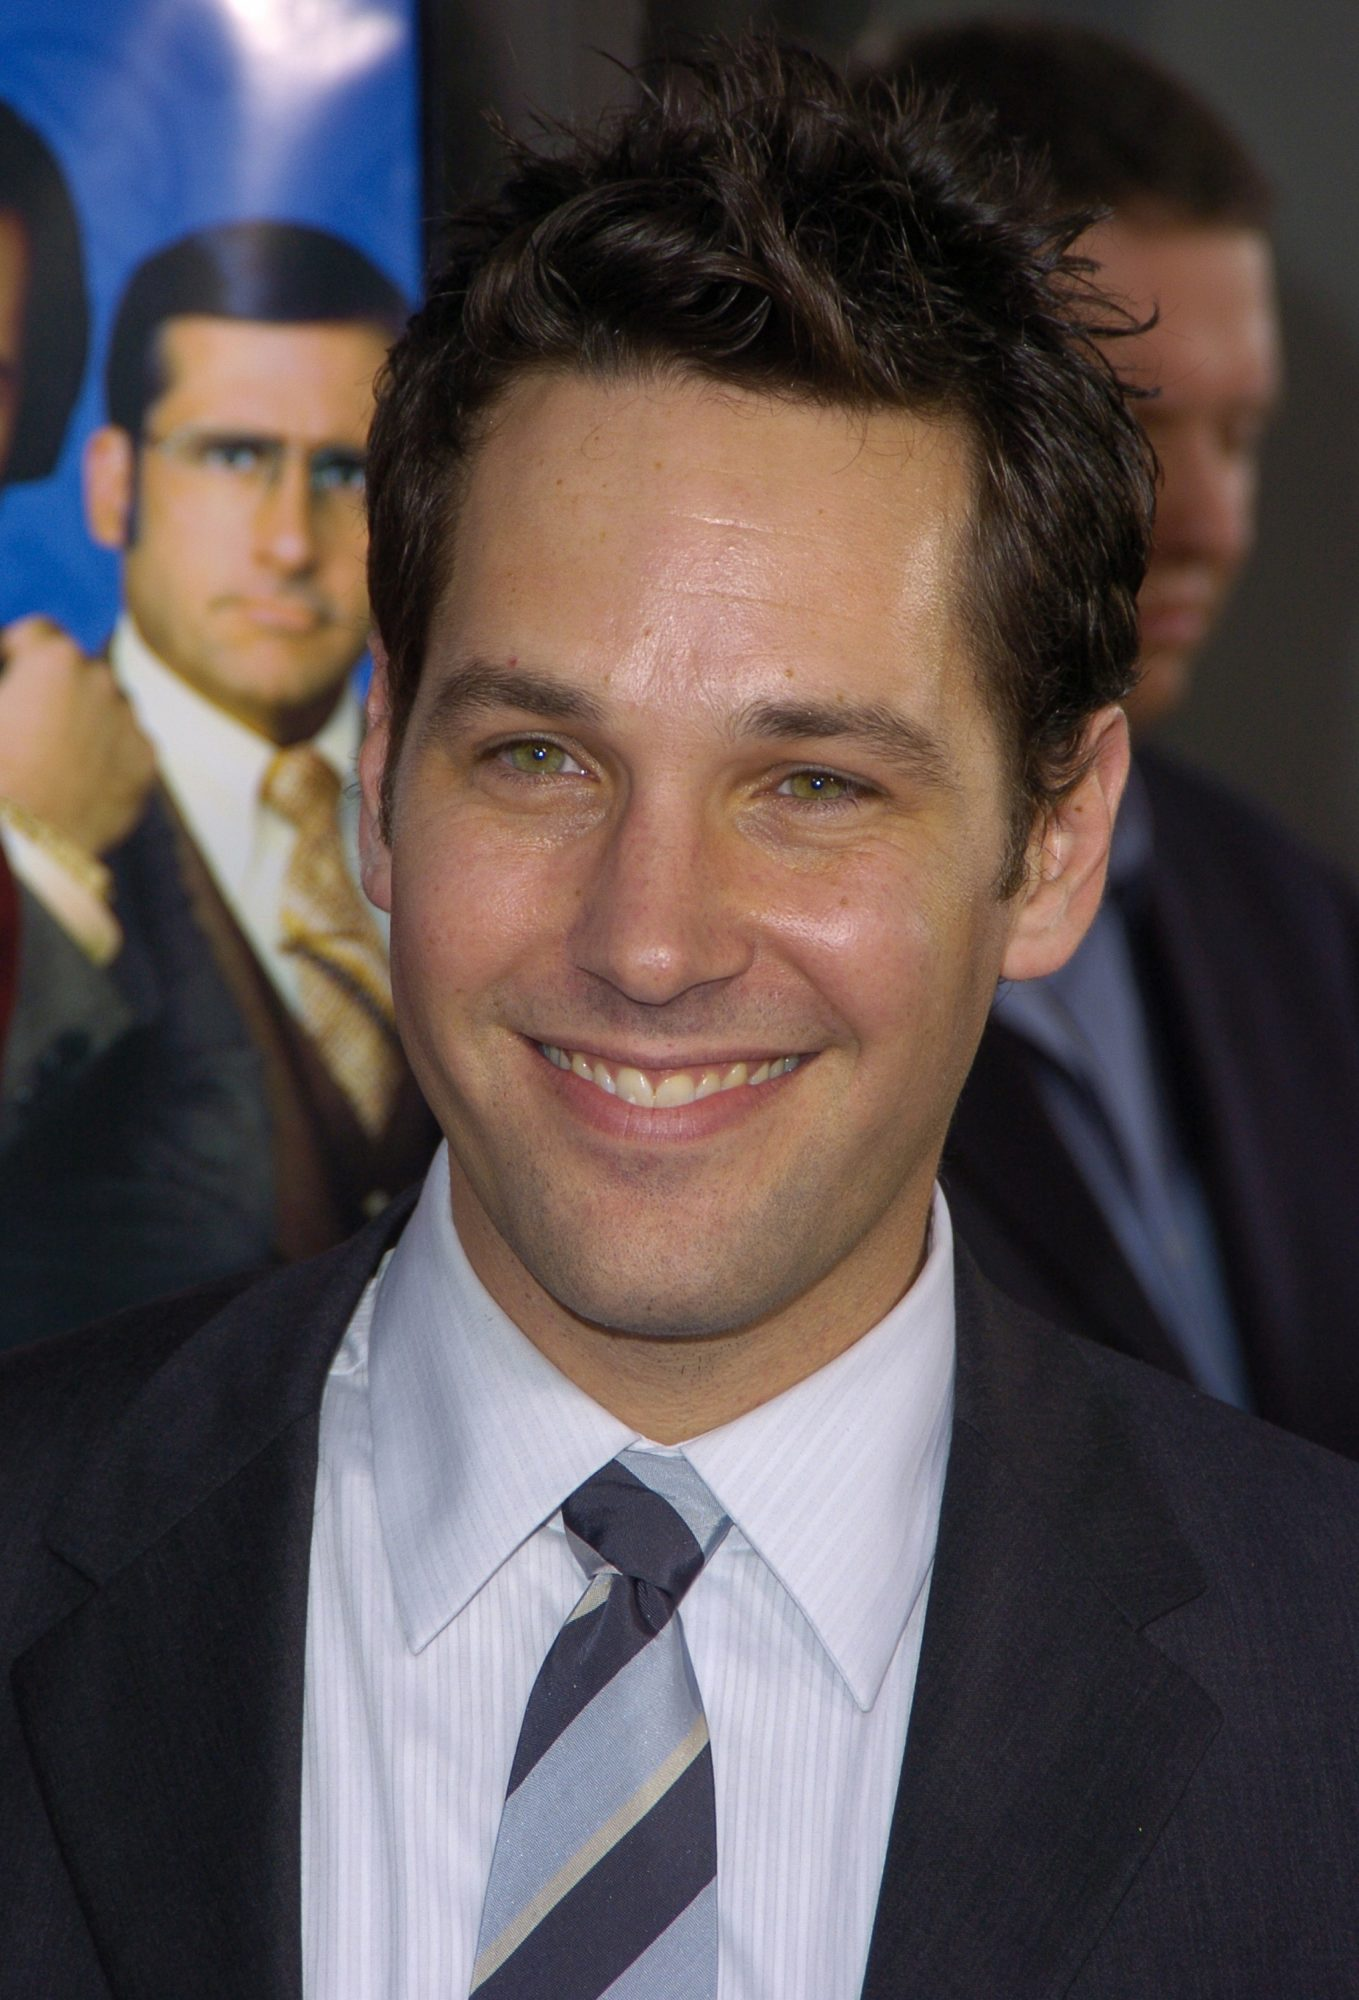 Paul Rudd S Age Never Changes And These Pictures Prove It Hellogiggles